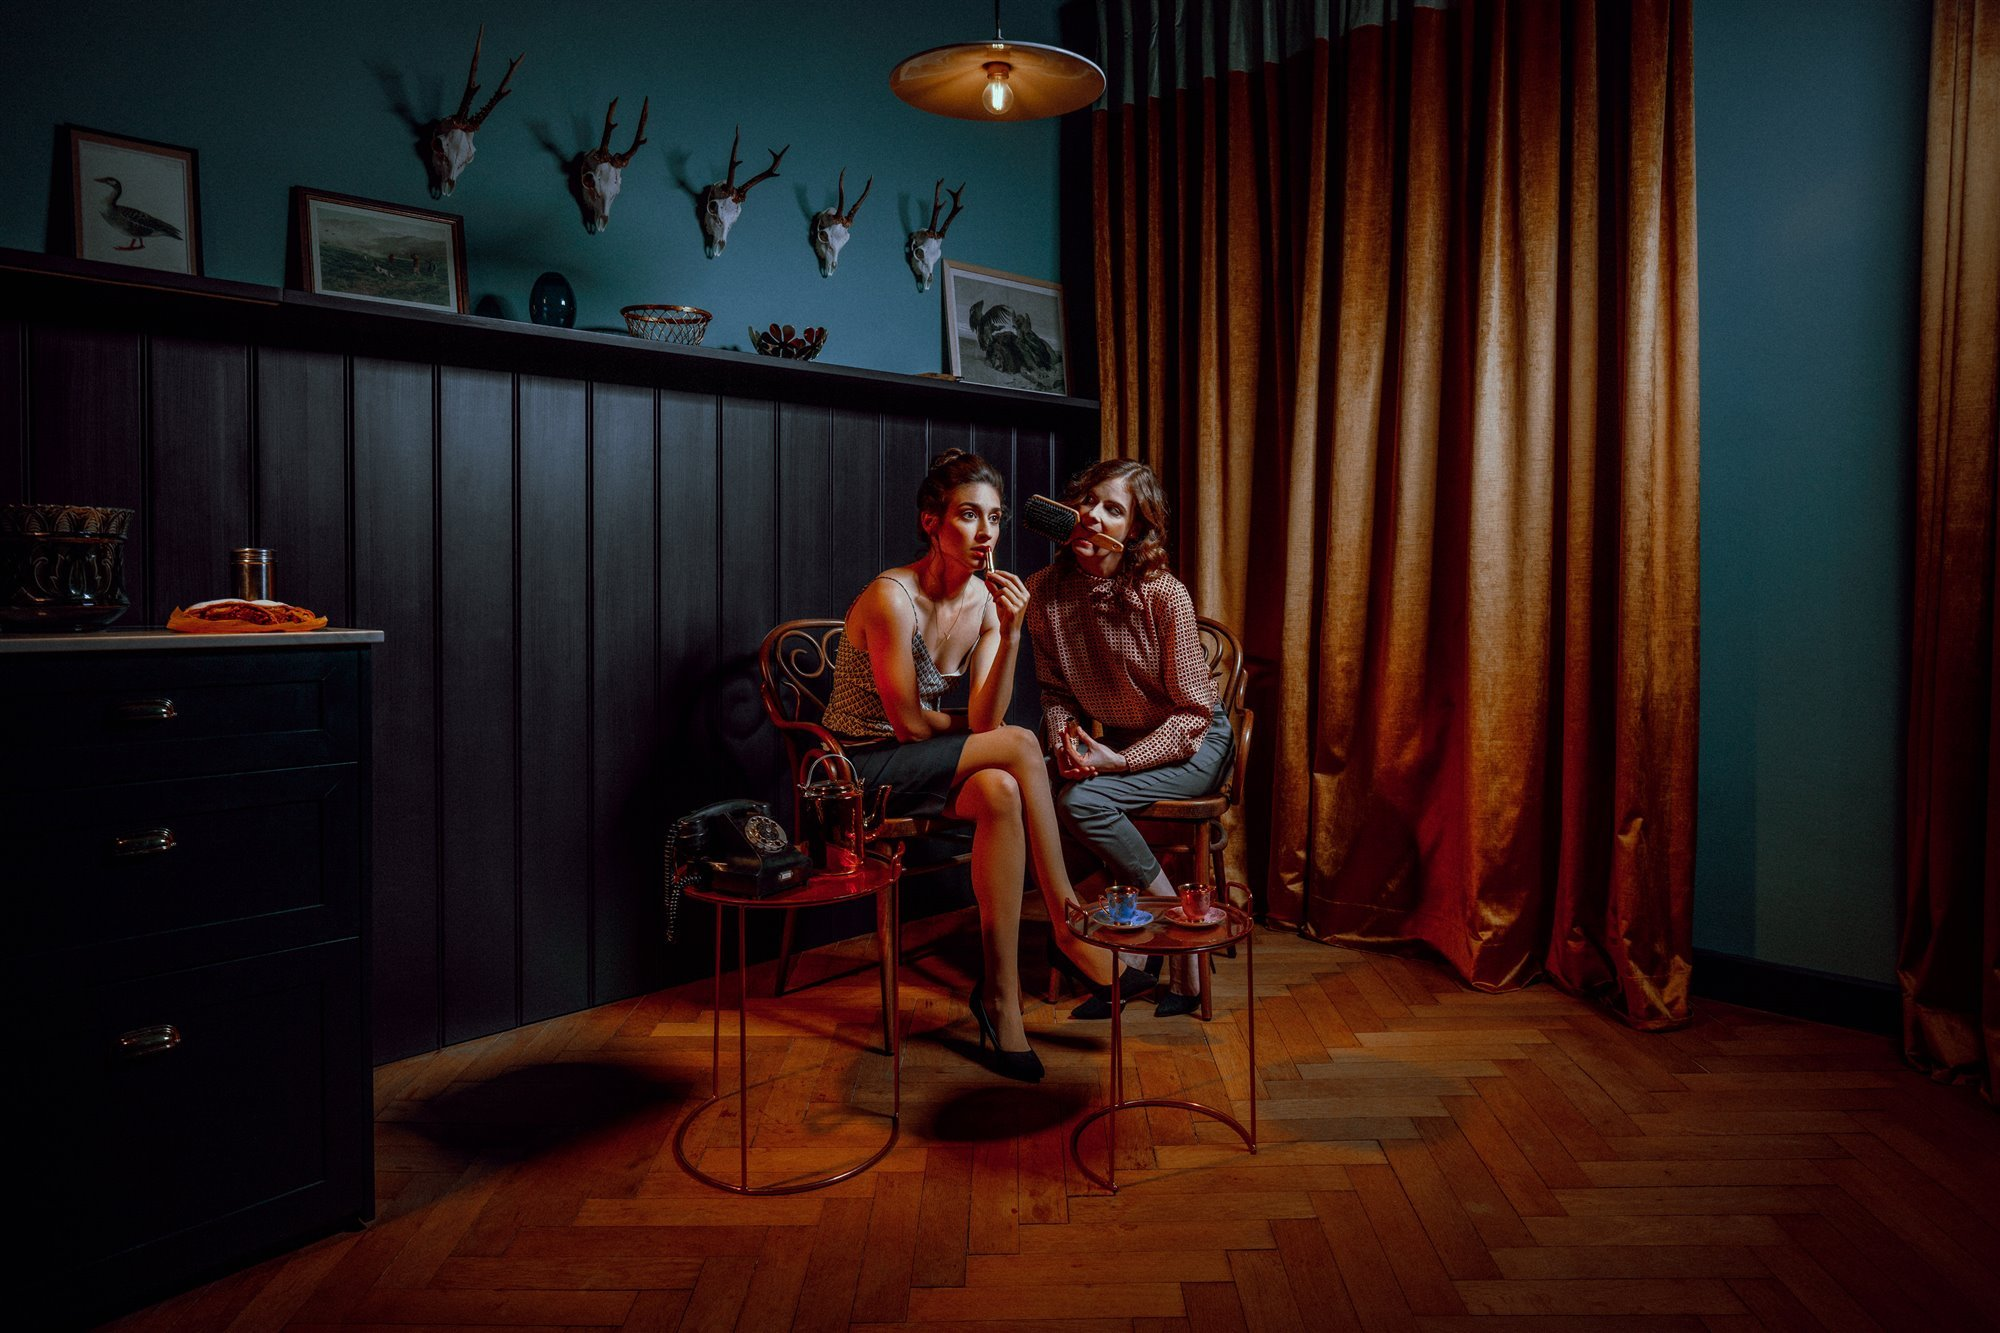 Eight Rooms – Marta Dancingerova and Andrea Bursova